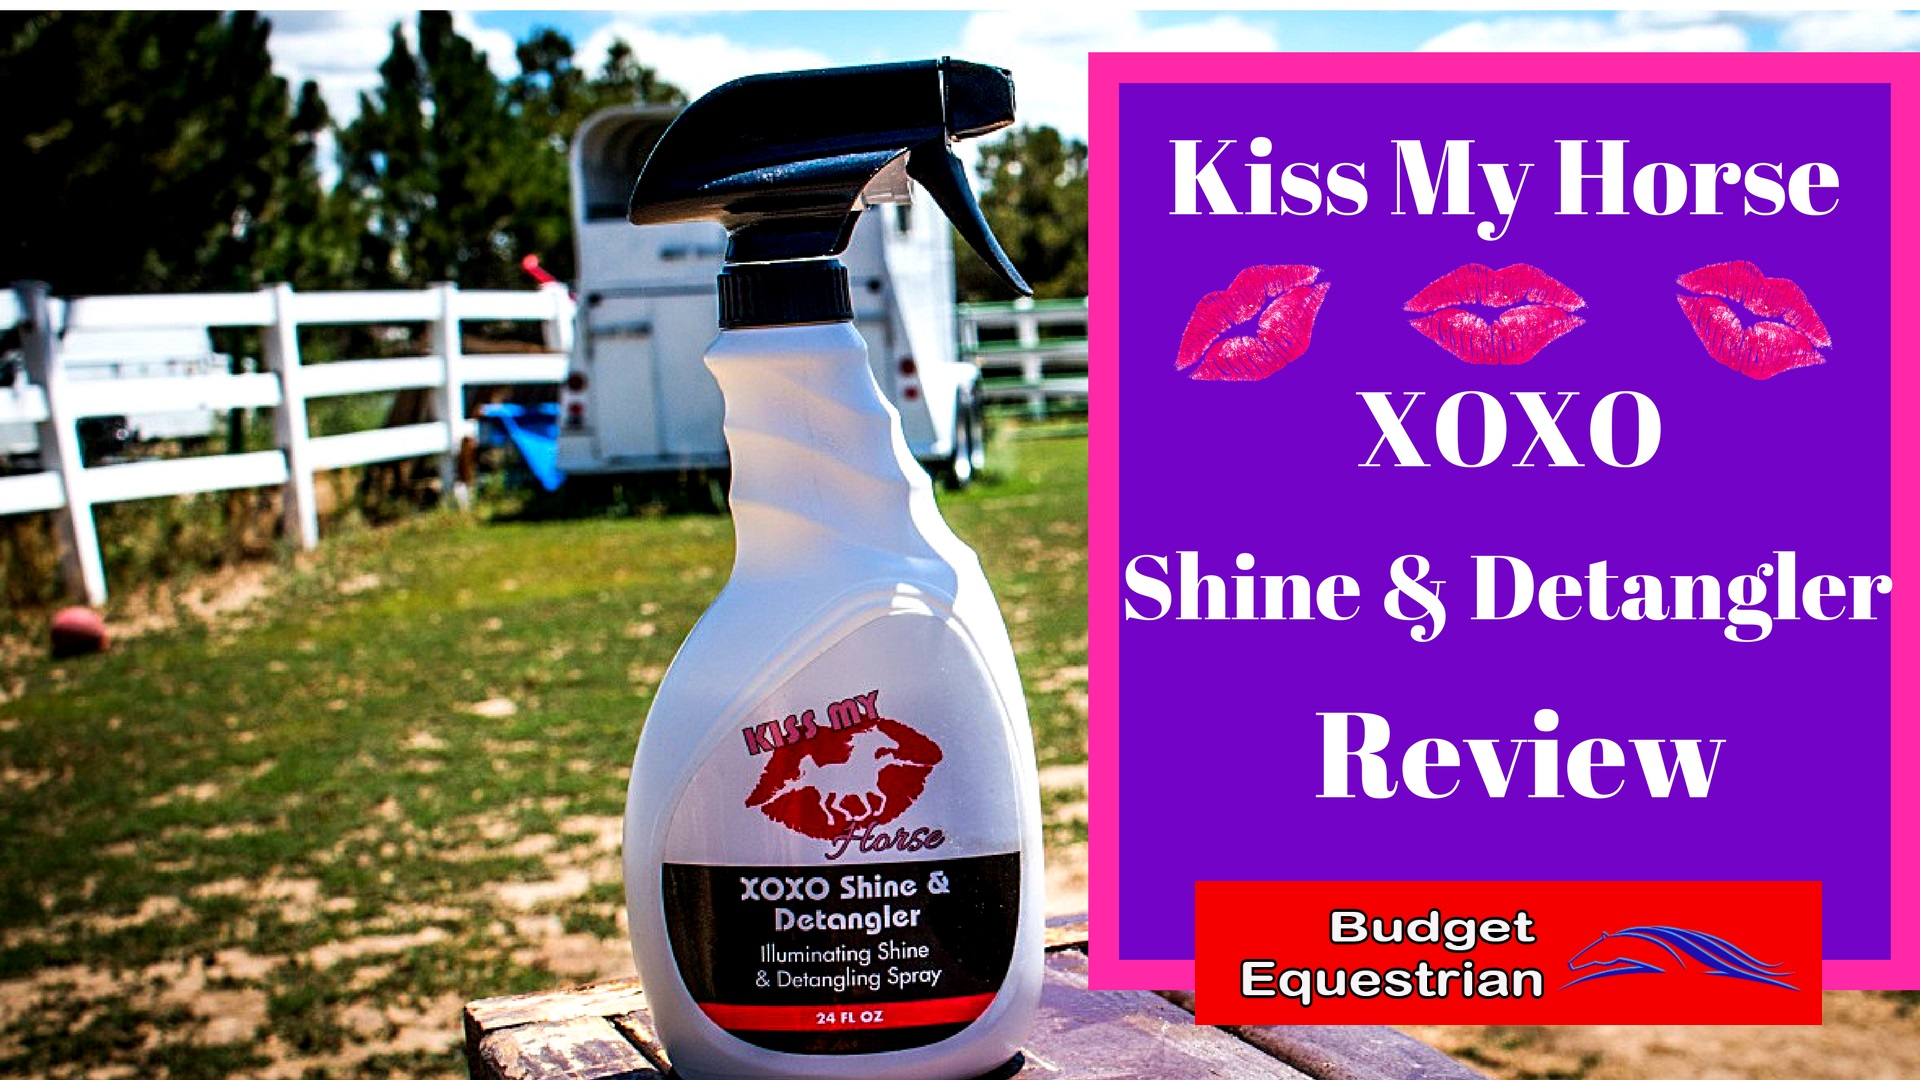 Kiss My Horse XOXO Detangler and Shine Review